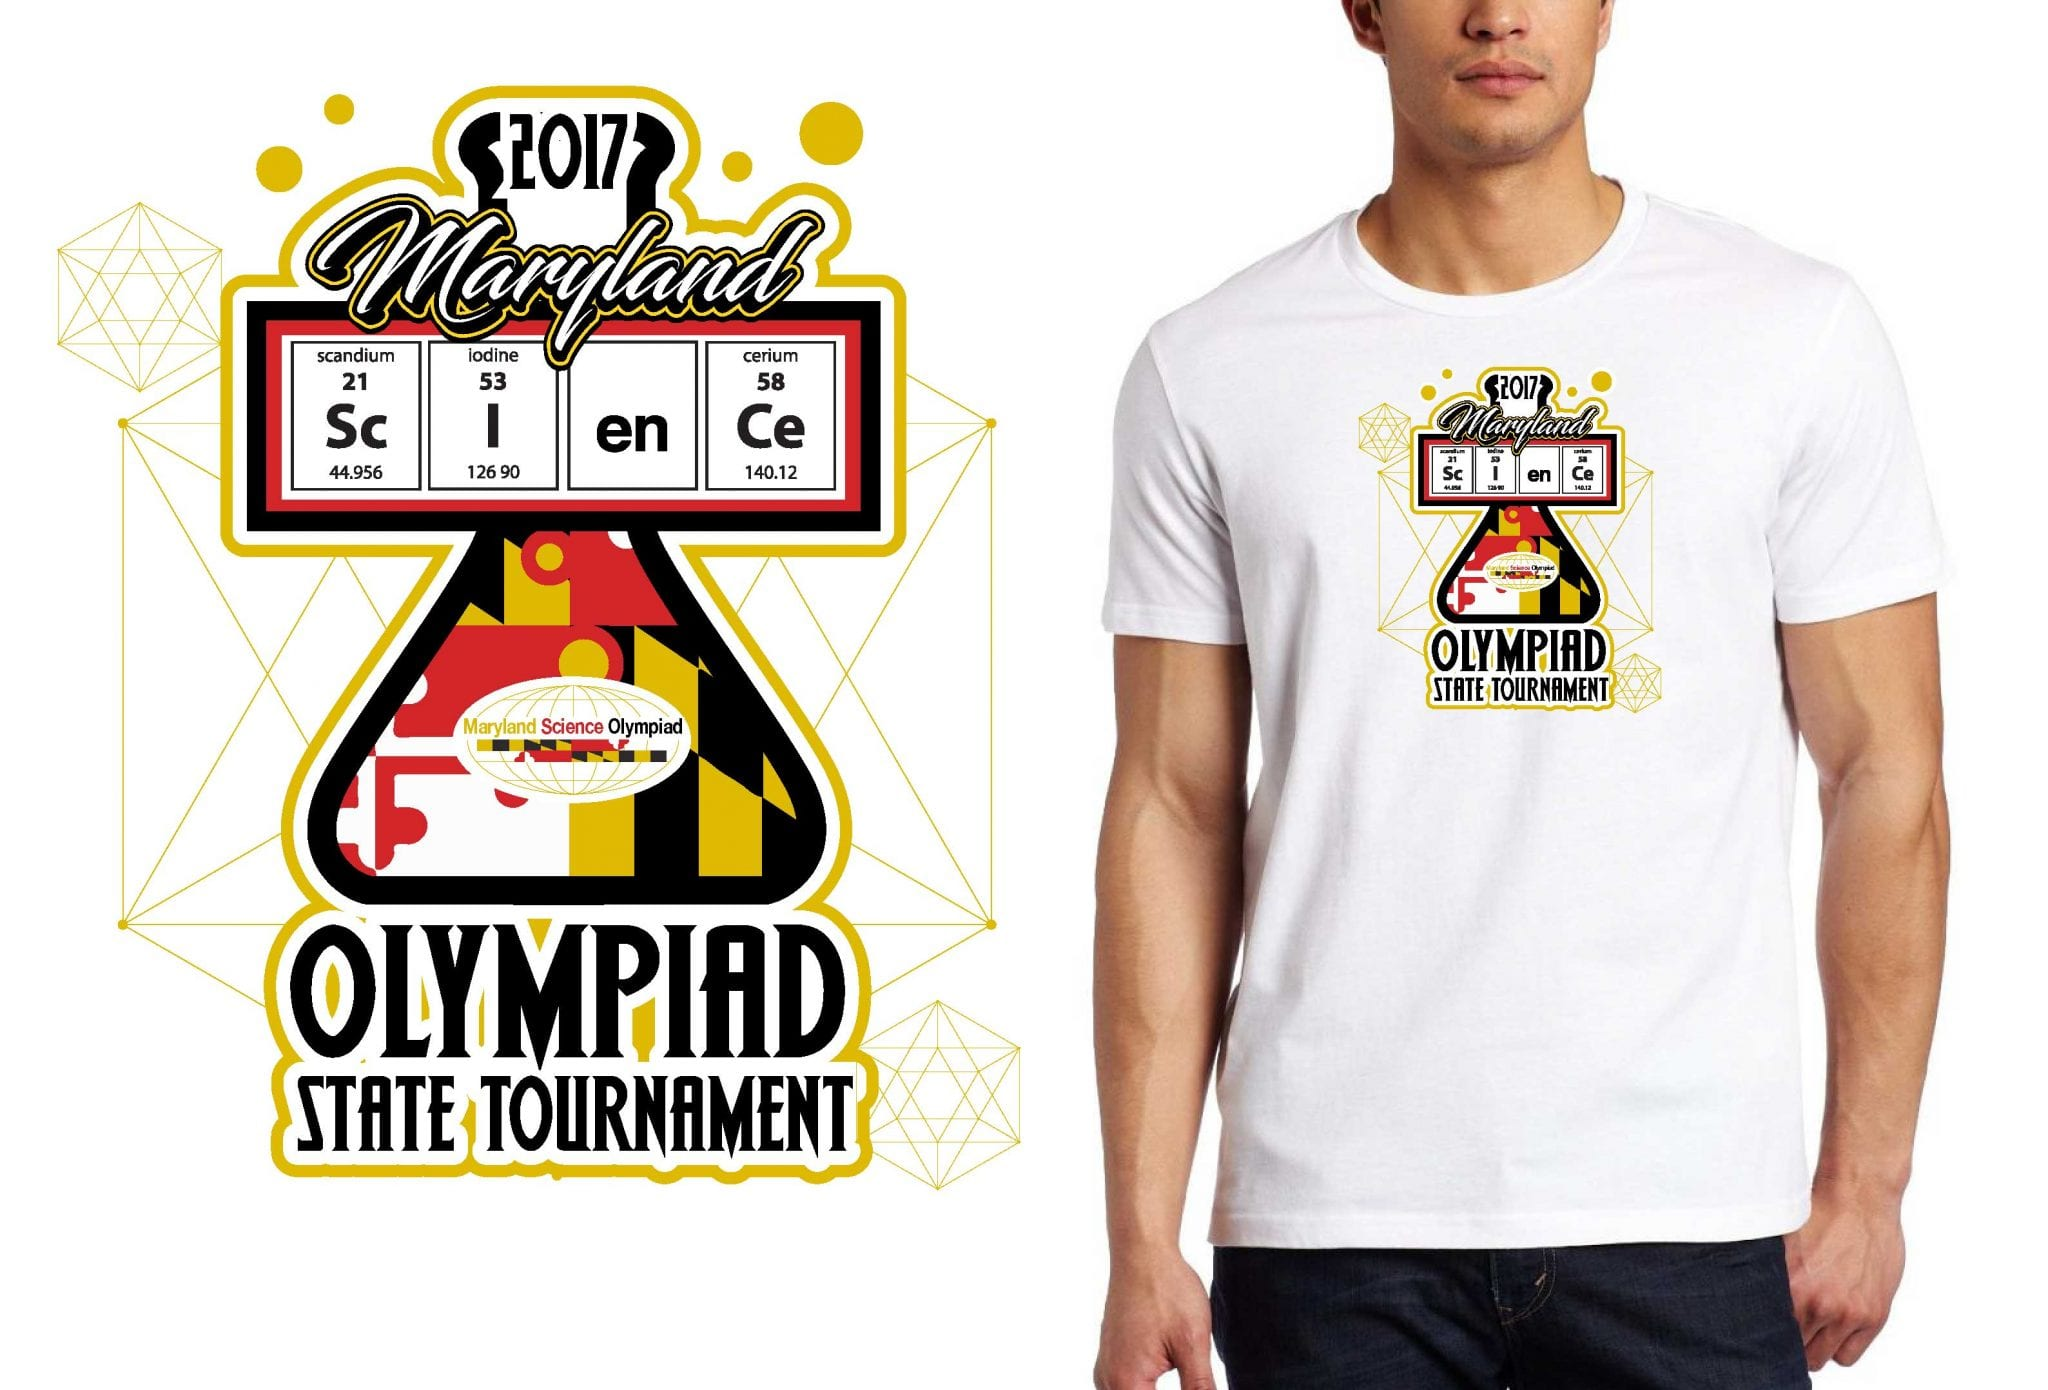 2017 Maryland Science Olympiad State Tournament MD vector logo design for t-shirt UrArtStudio